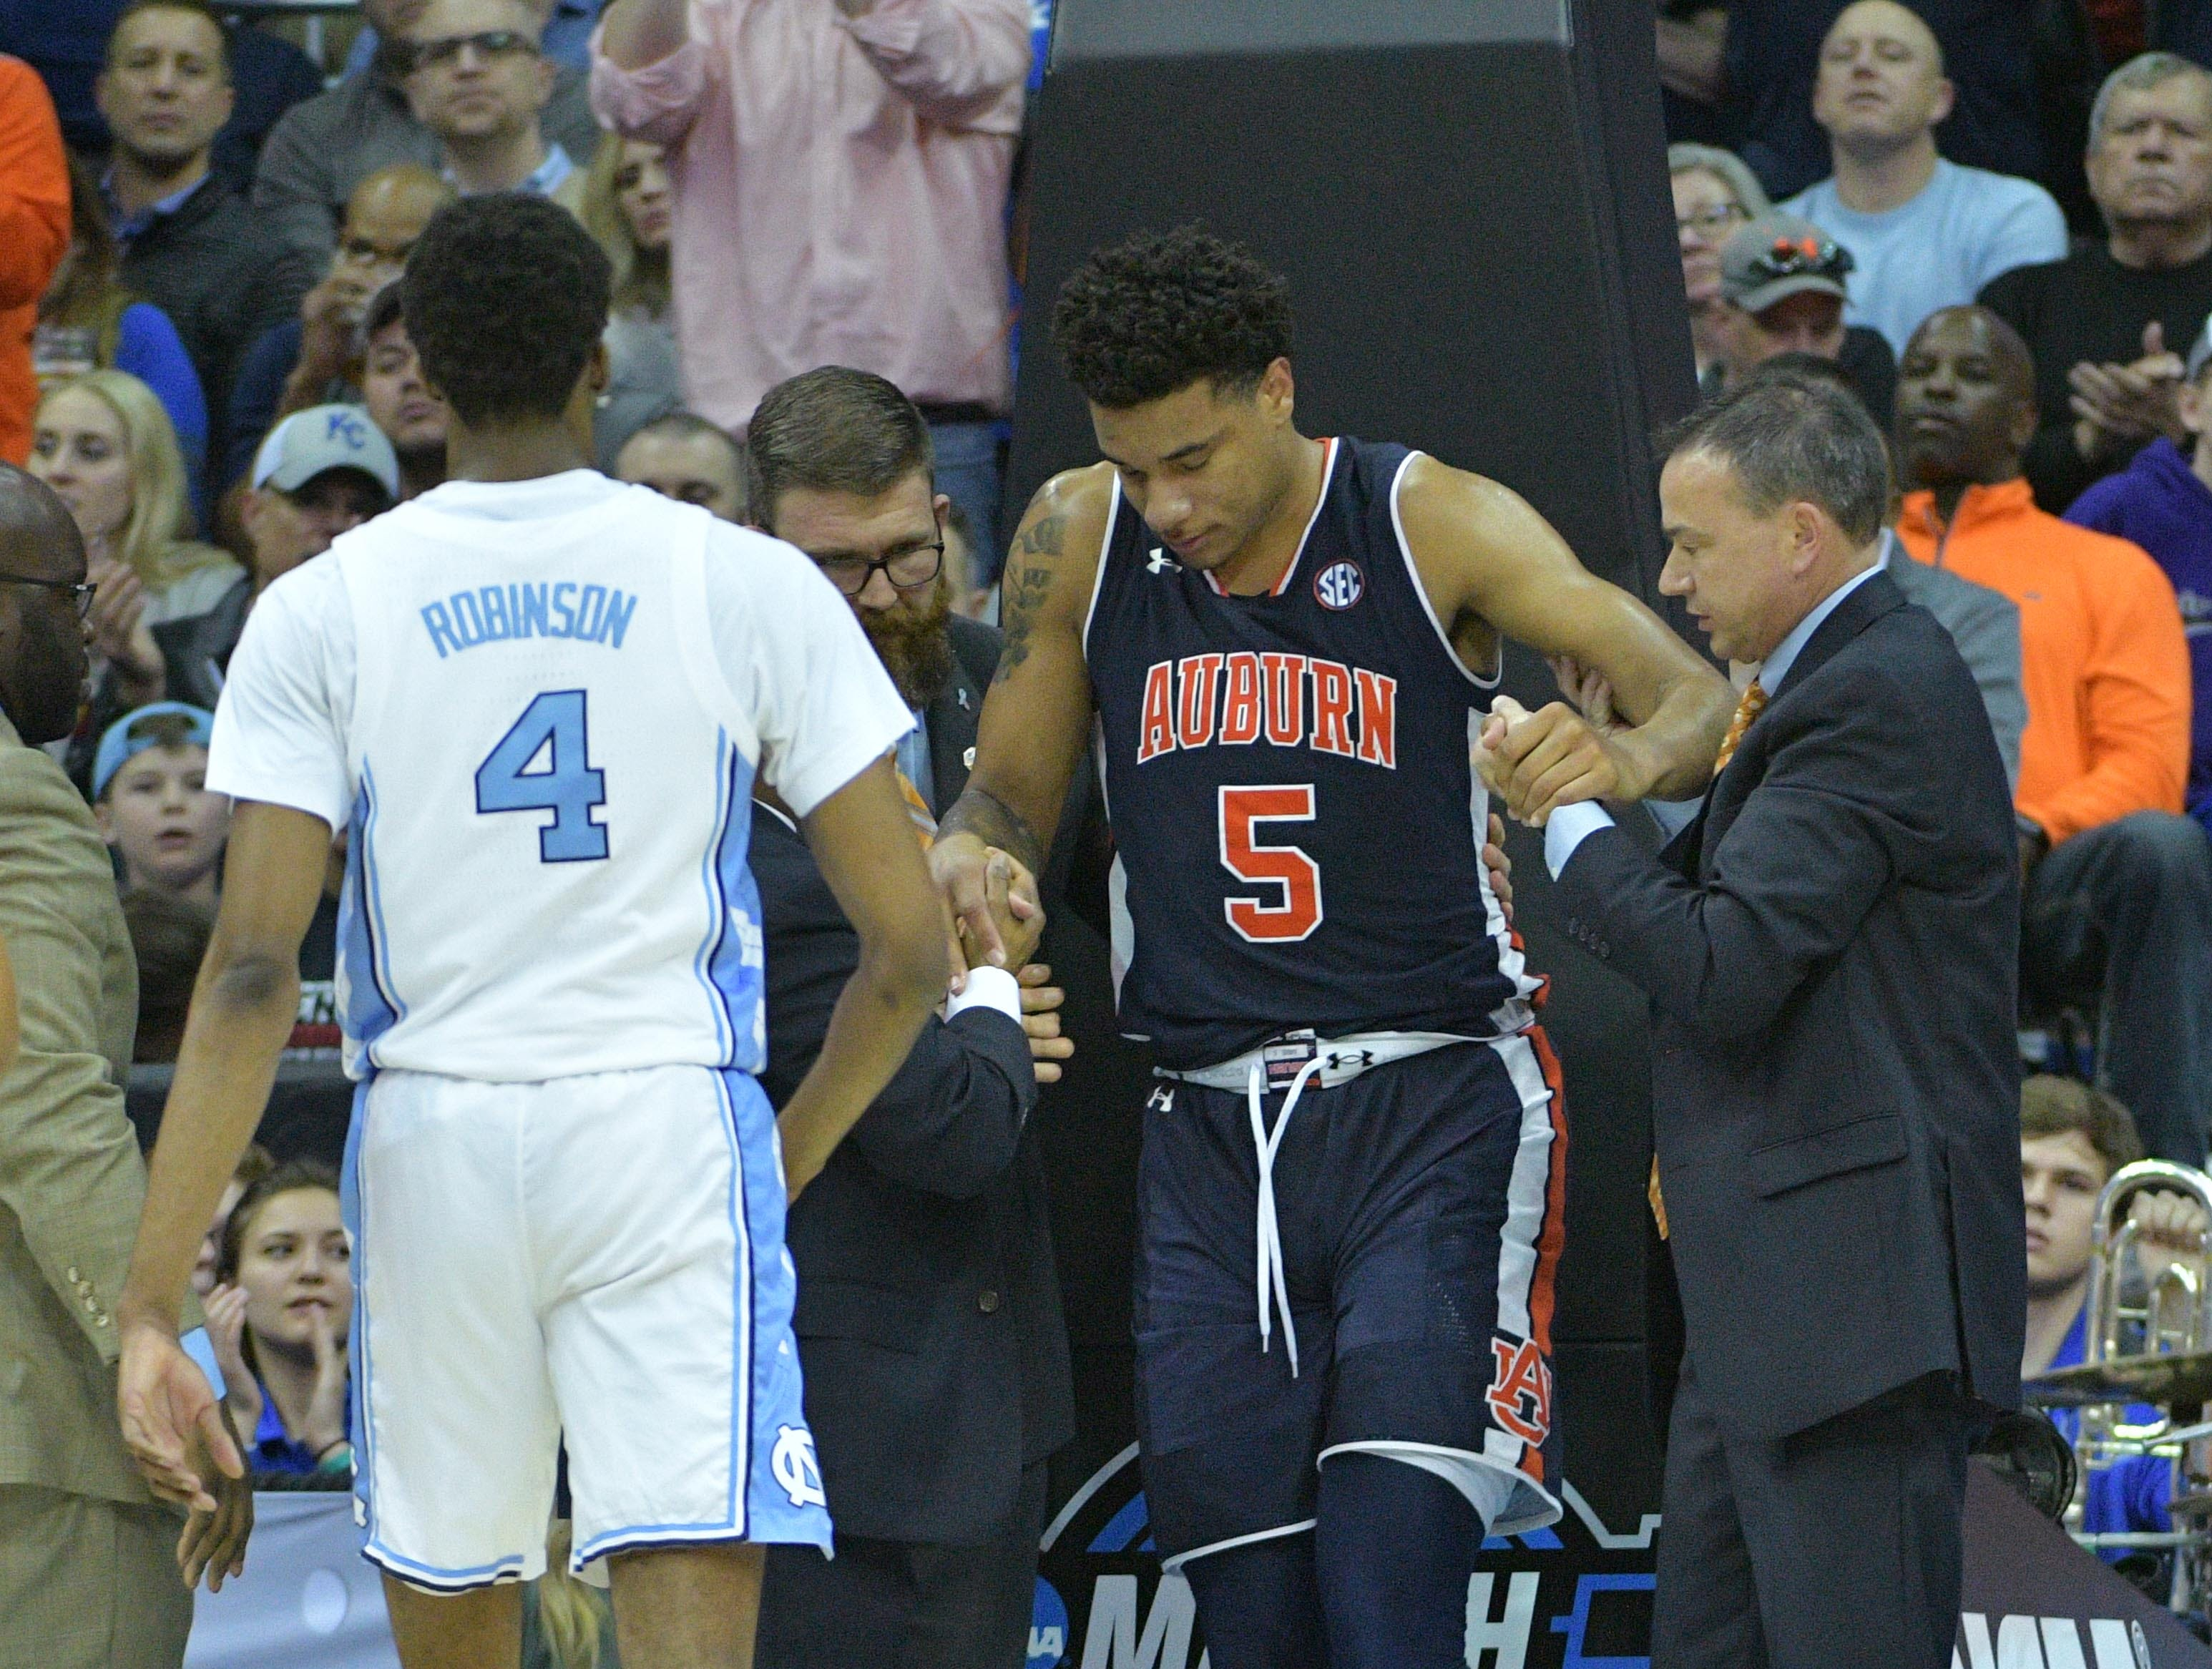 Mar 29, 2019; Kansas City, MO, United States; Auburn Tigers forward Chuma Okeke (5) is helped up after suffering an apparent injury against the North Carolina Tar Heels during the second half in the semifinals of the midwest regional of the 2019 NCAA Tournament at Sprint Center. Mandatory Credit: Denny Medley-USA TODAY Sports